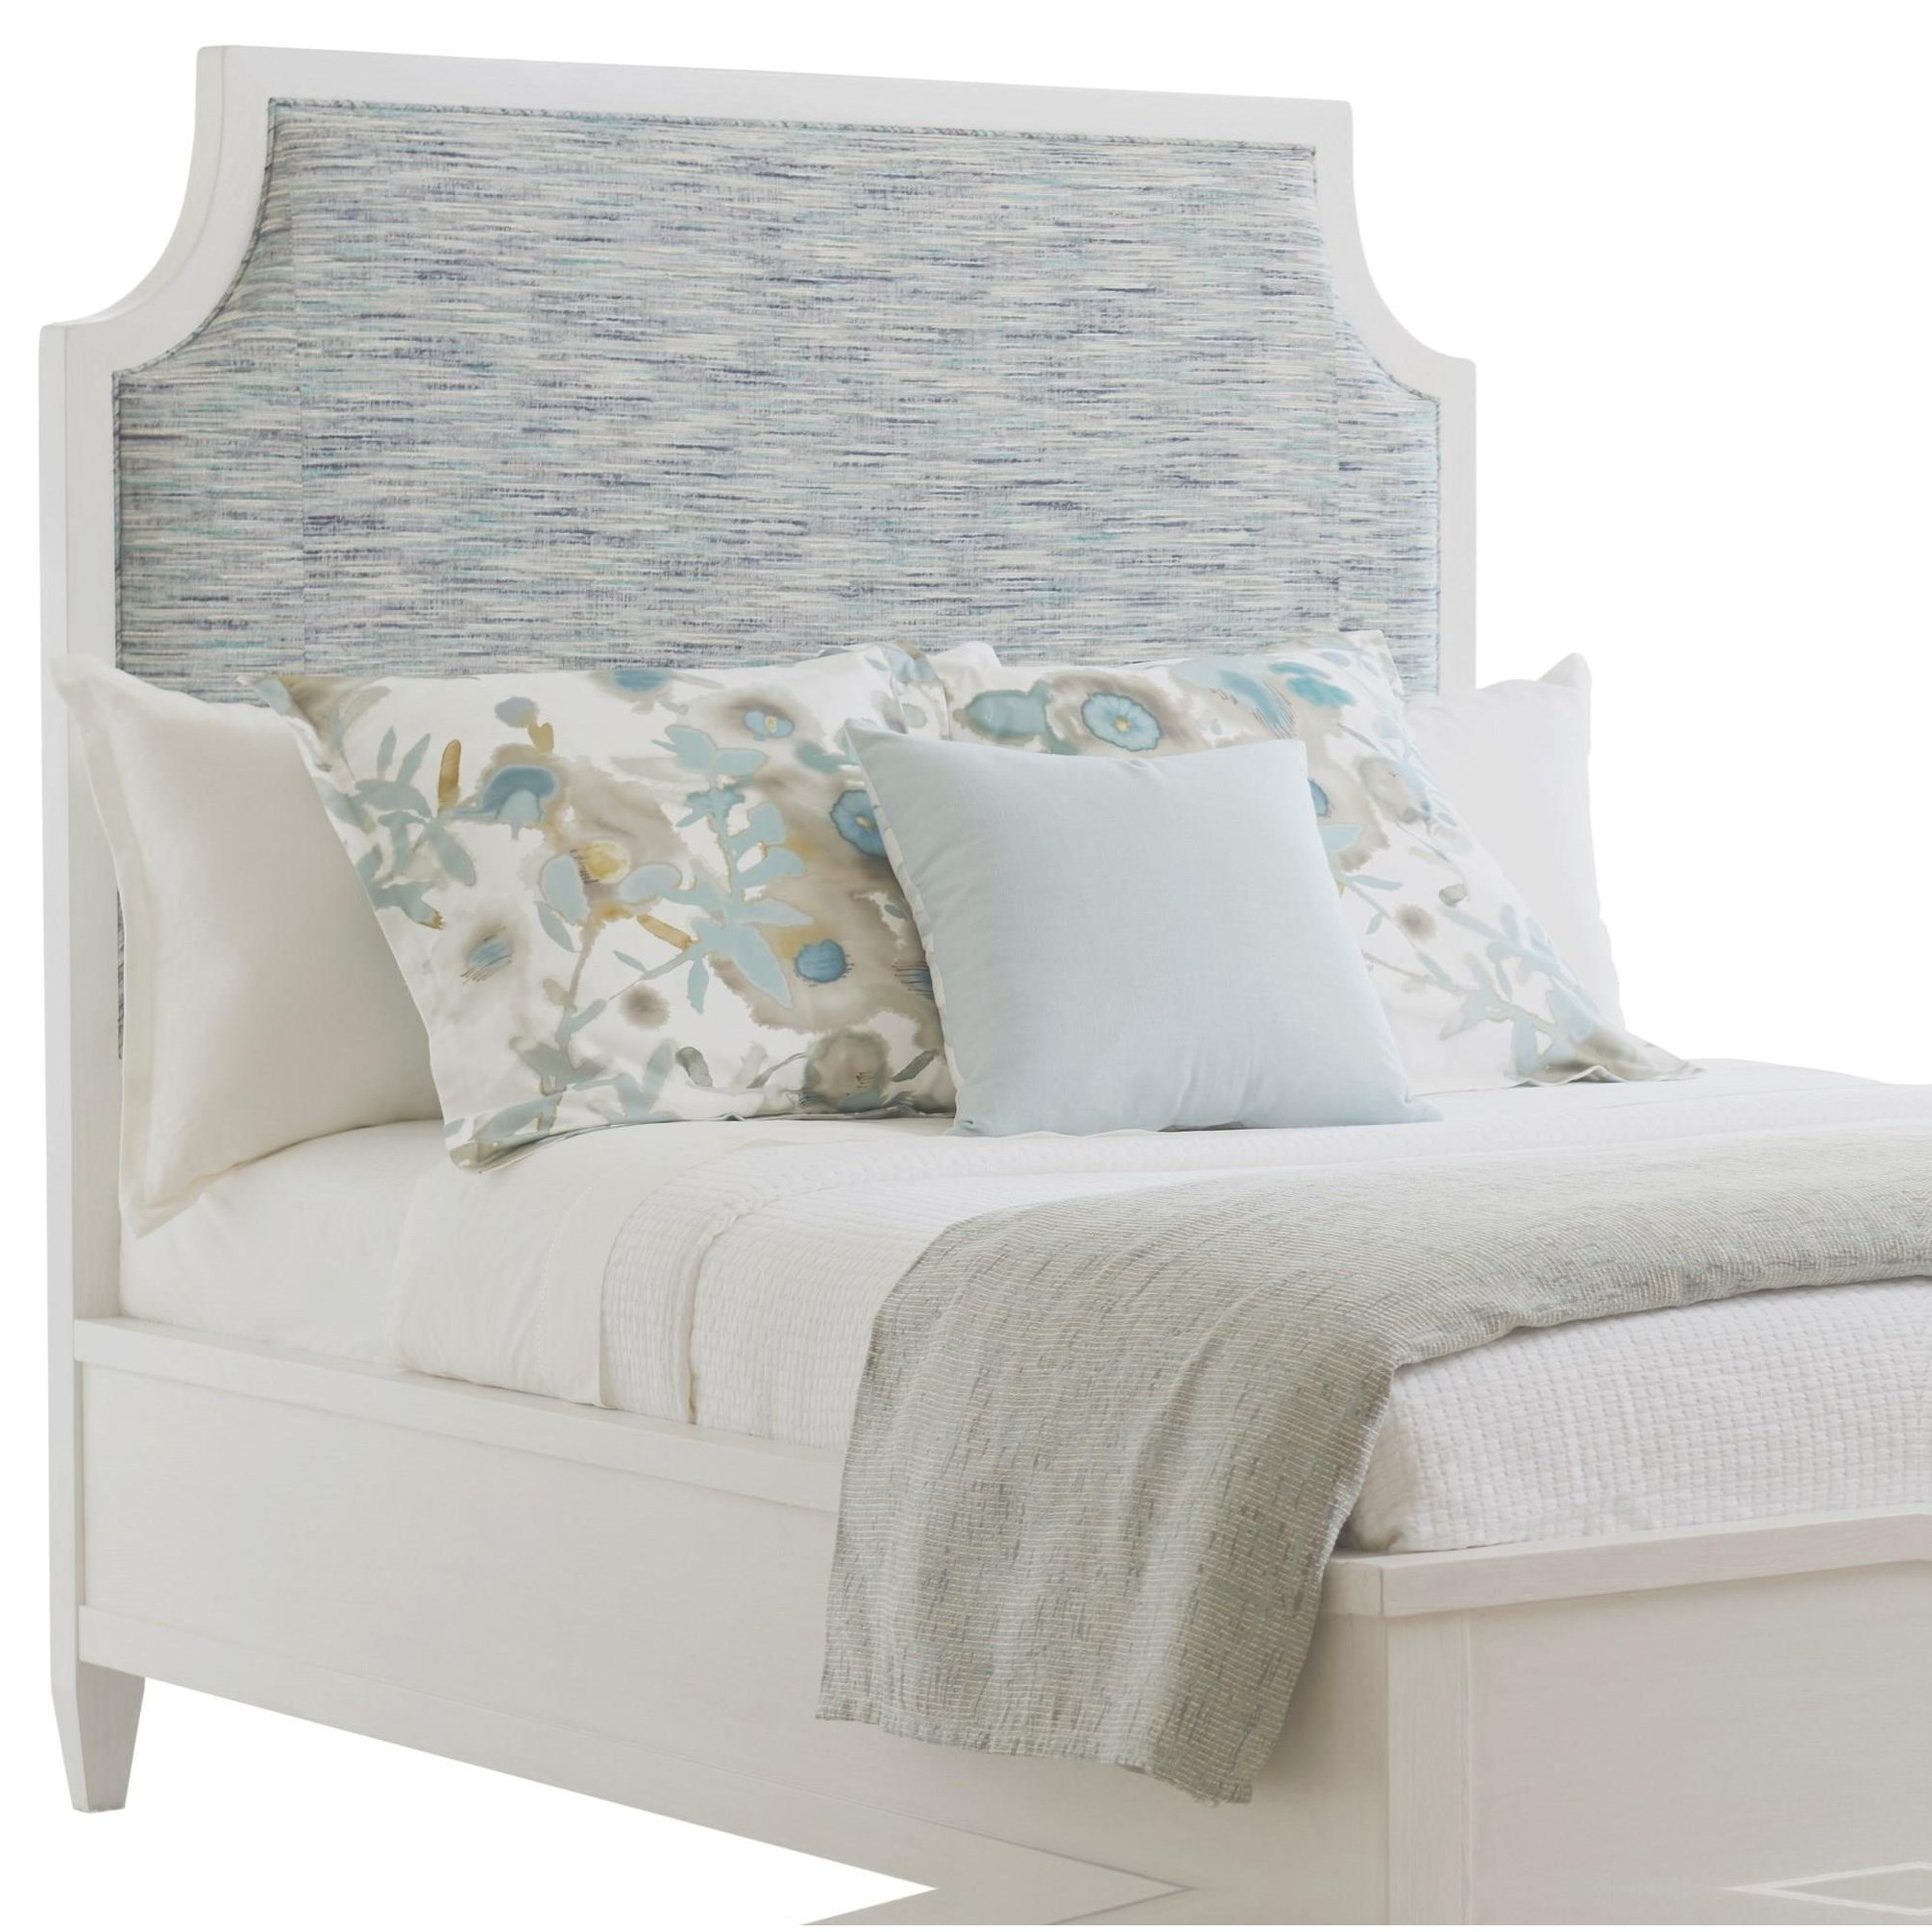 Ocean Breeze Belle Isle Upholstered Headboard King by Tommy Bahama Home at Baer's Furniture